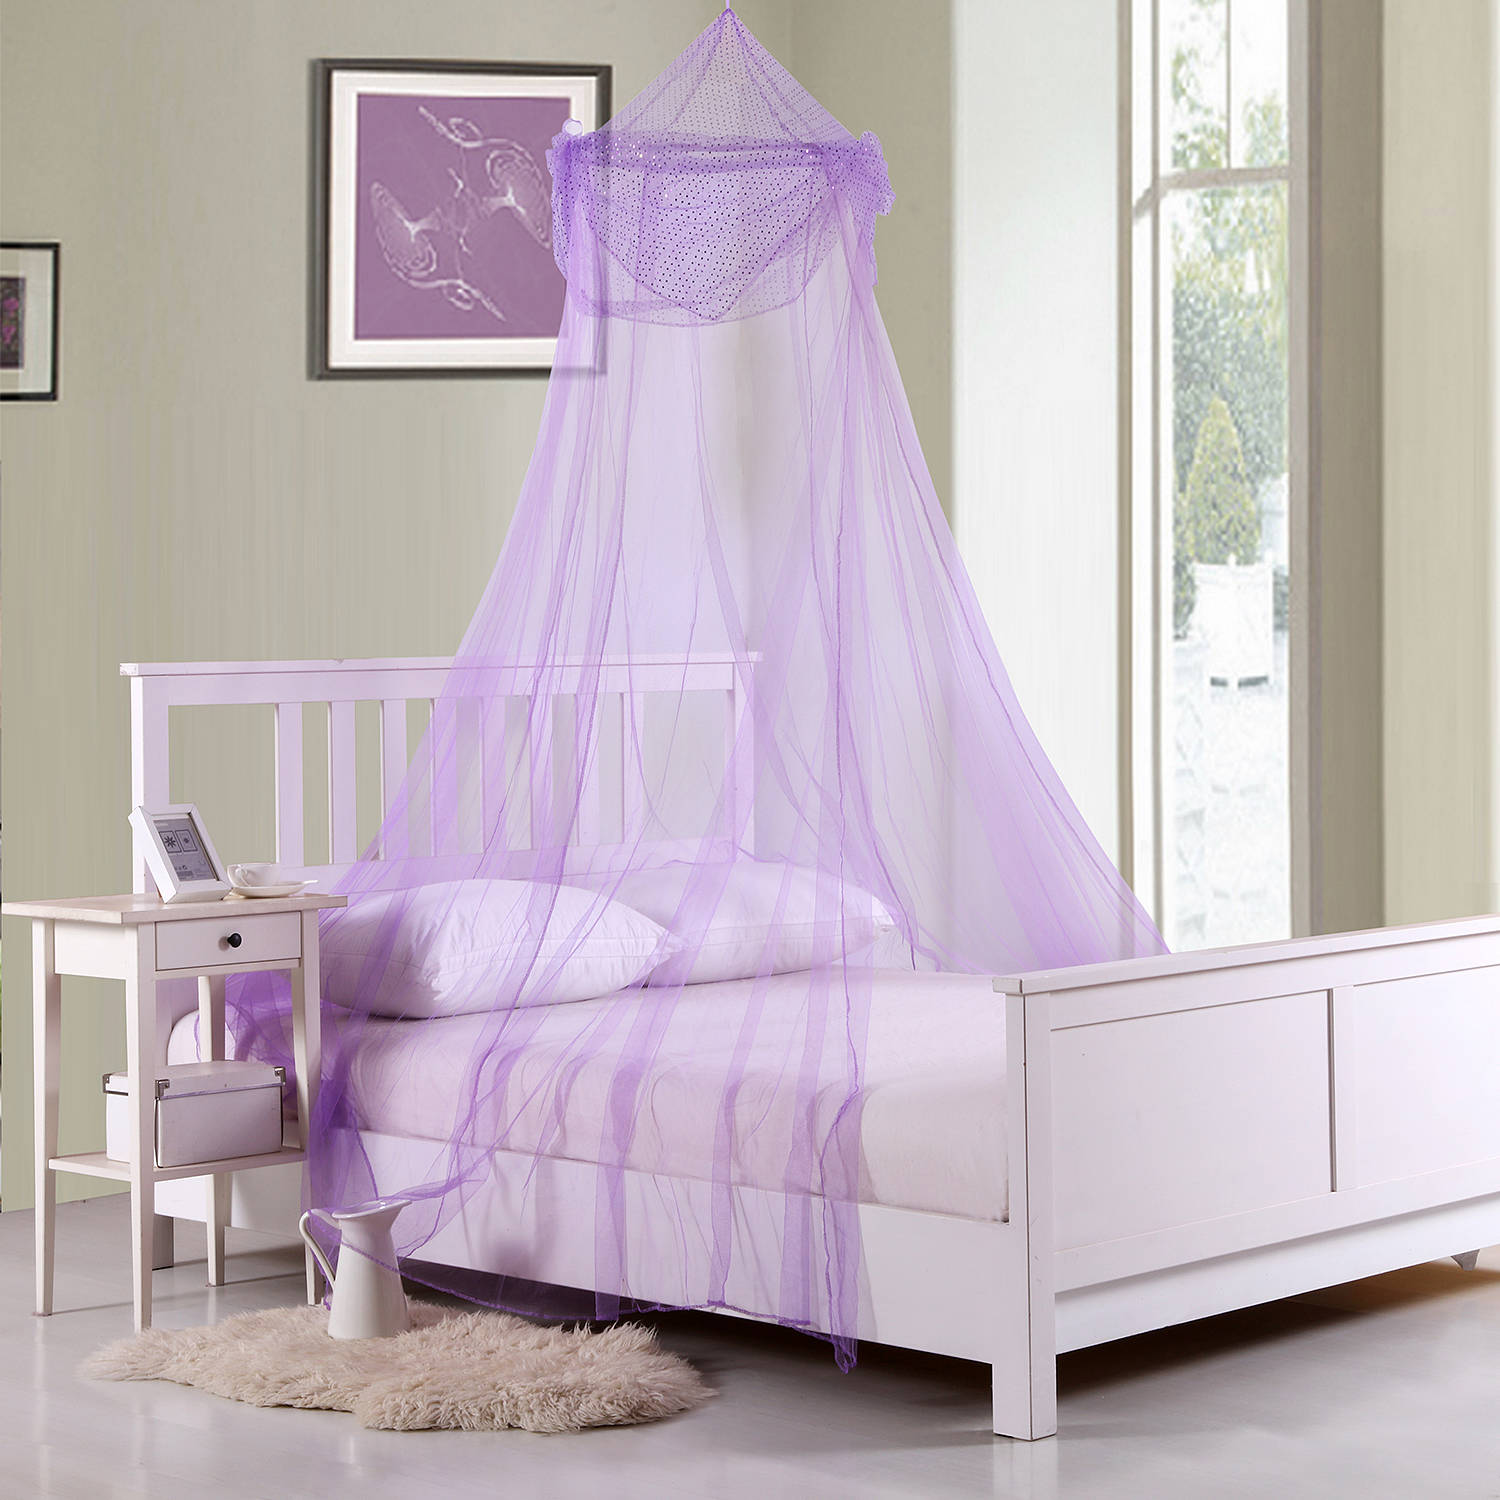 Raisinette Kids' Collapsible Hoop Sheer Bed Canopy